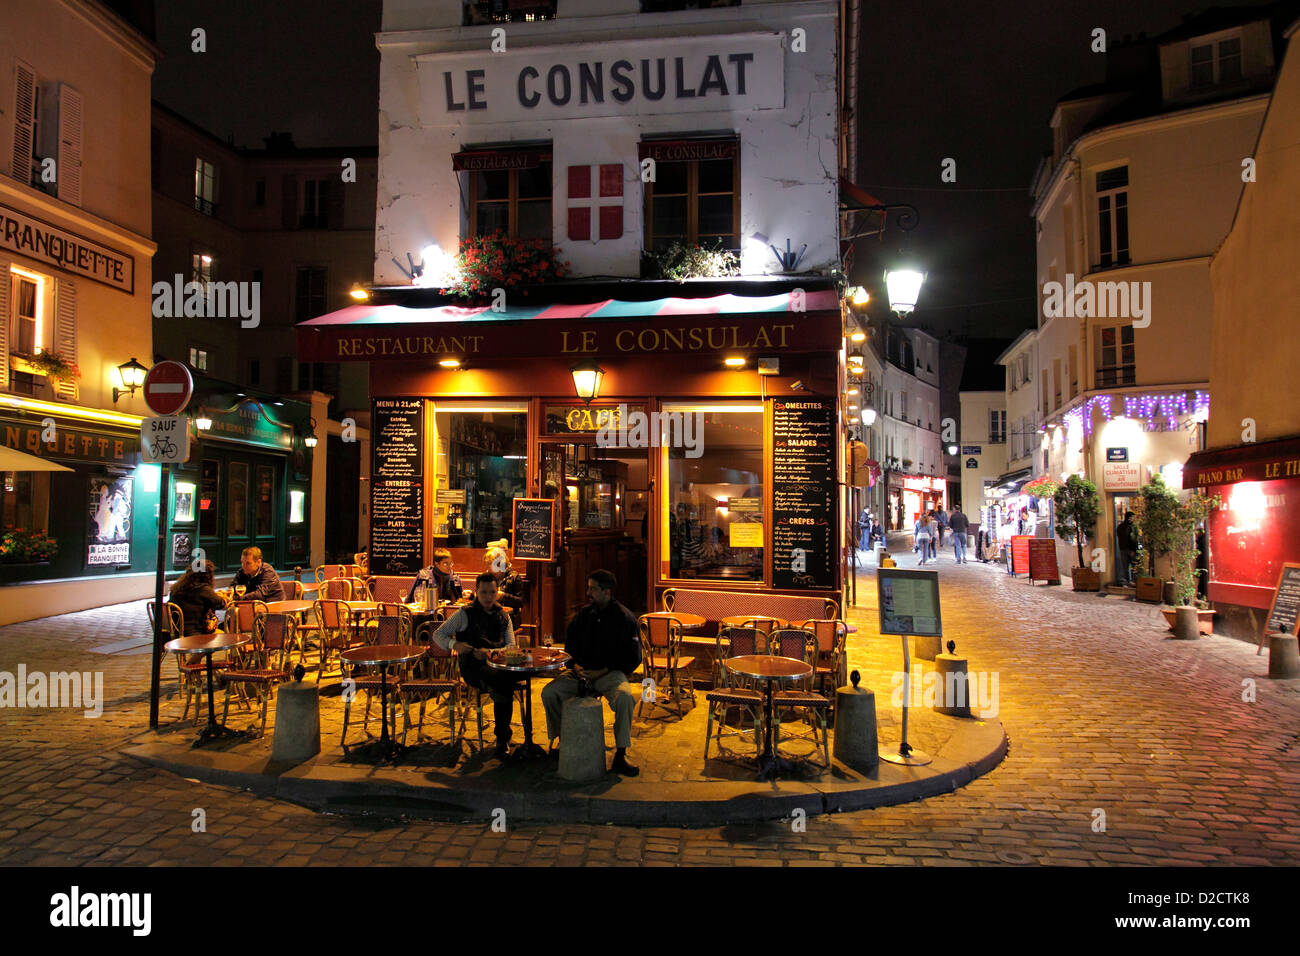 Restaurant and caf le consulat in montmartre at night for Le miroir restaurant montmartre